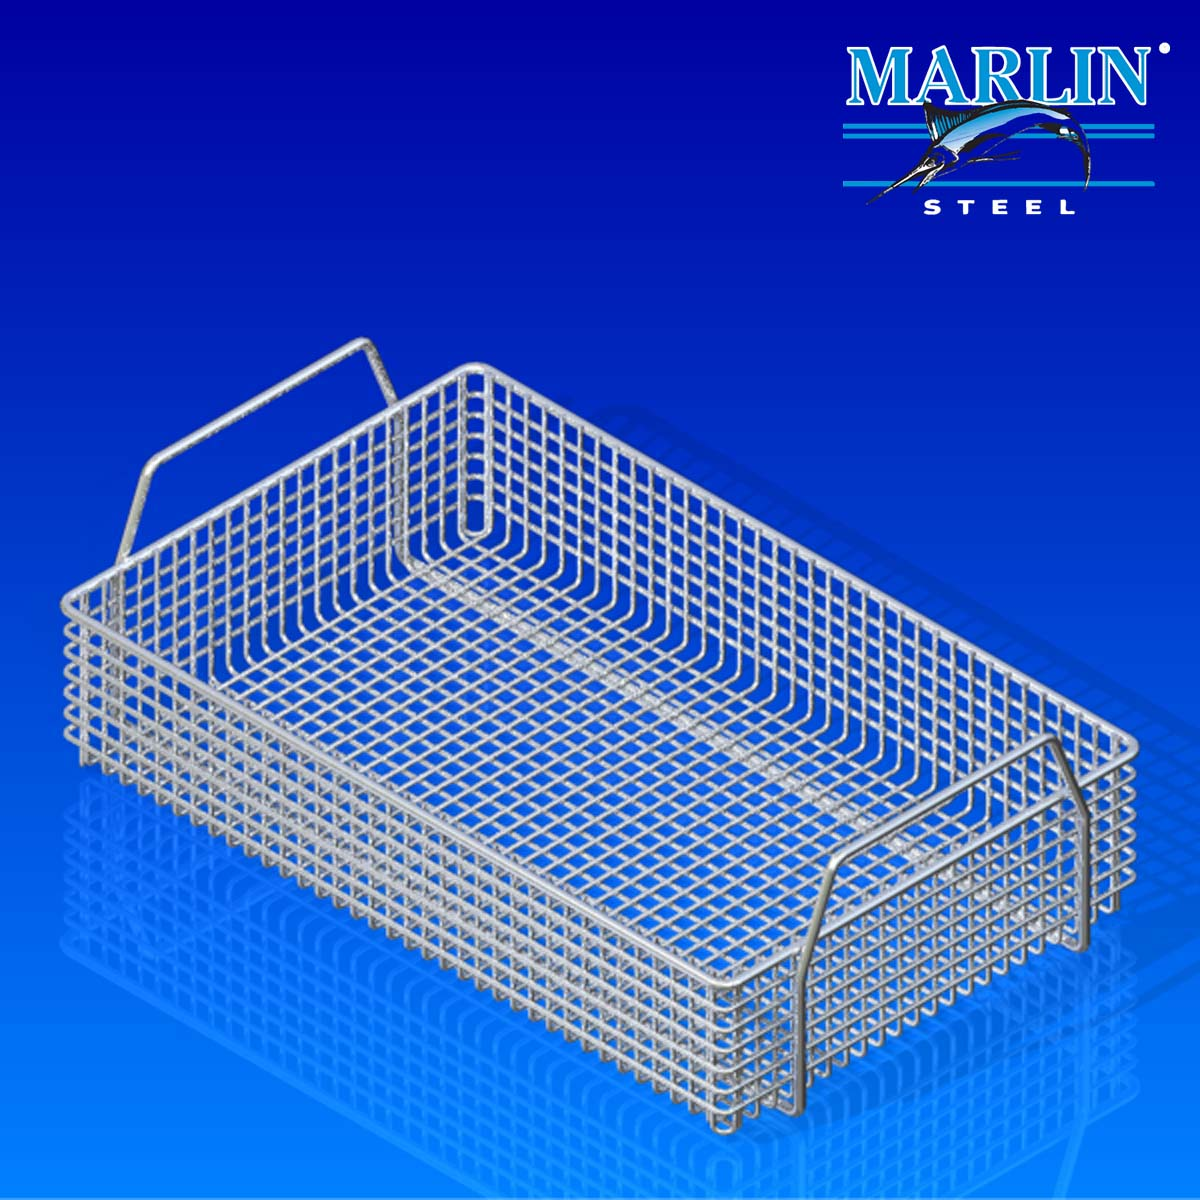 Marlin Steel Basket with Handles 823001